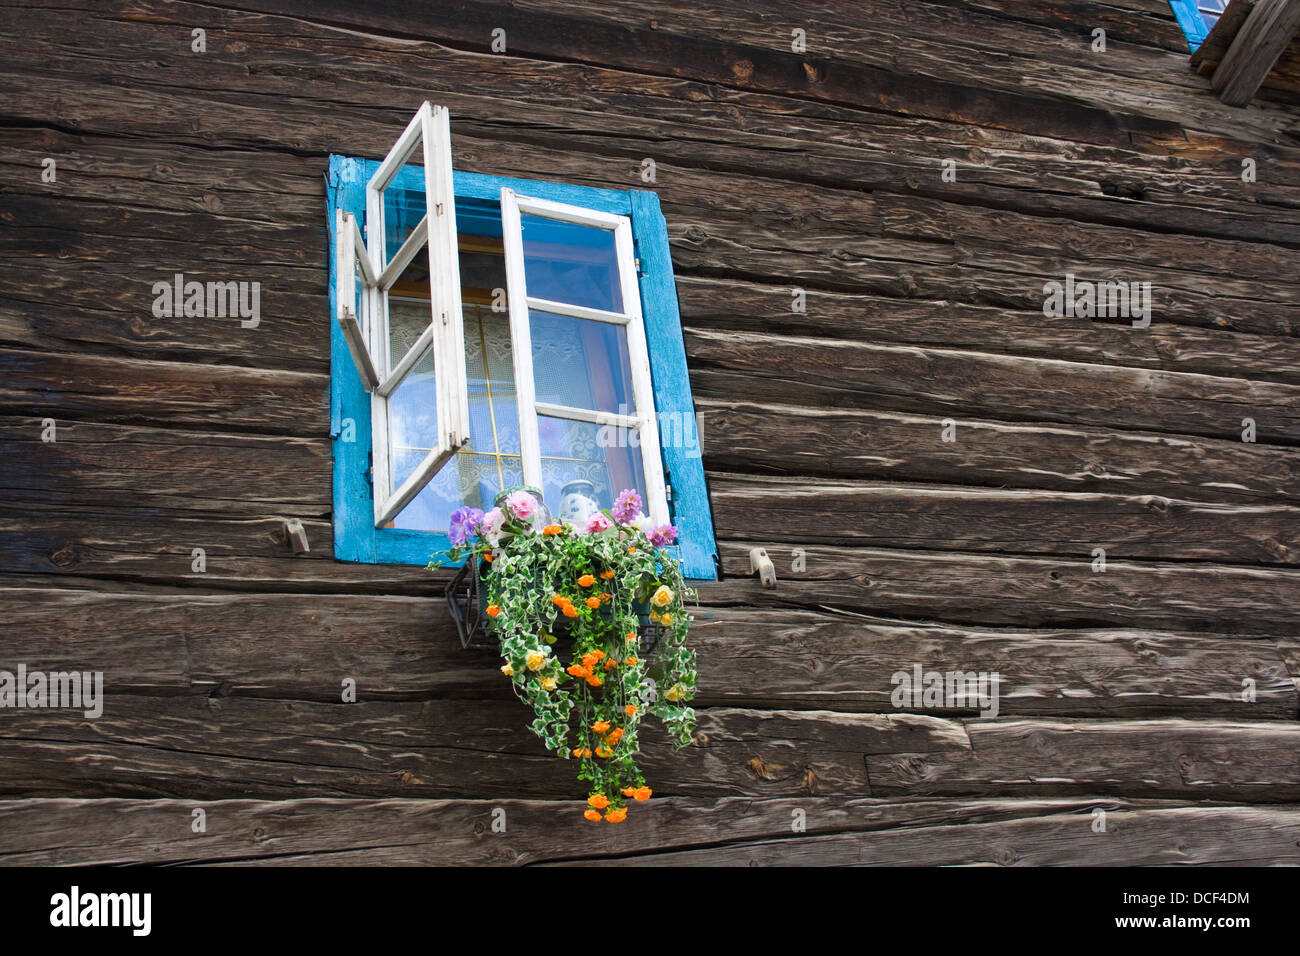 offenes Fenster in einem alten Holzhaus; open window of an old alpine log house - Stock Image